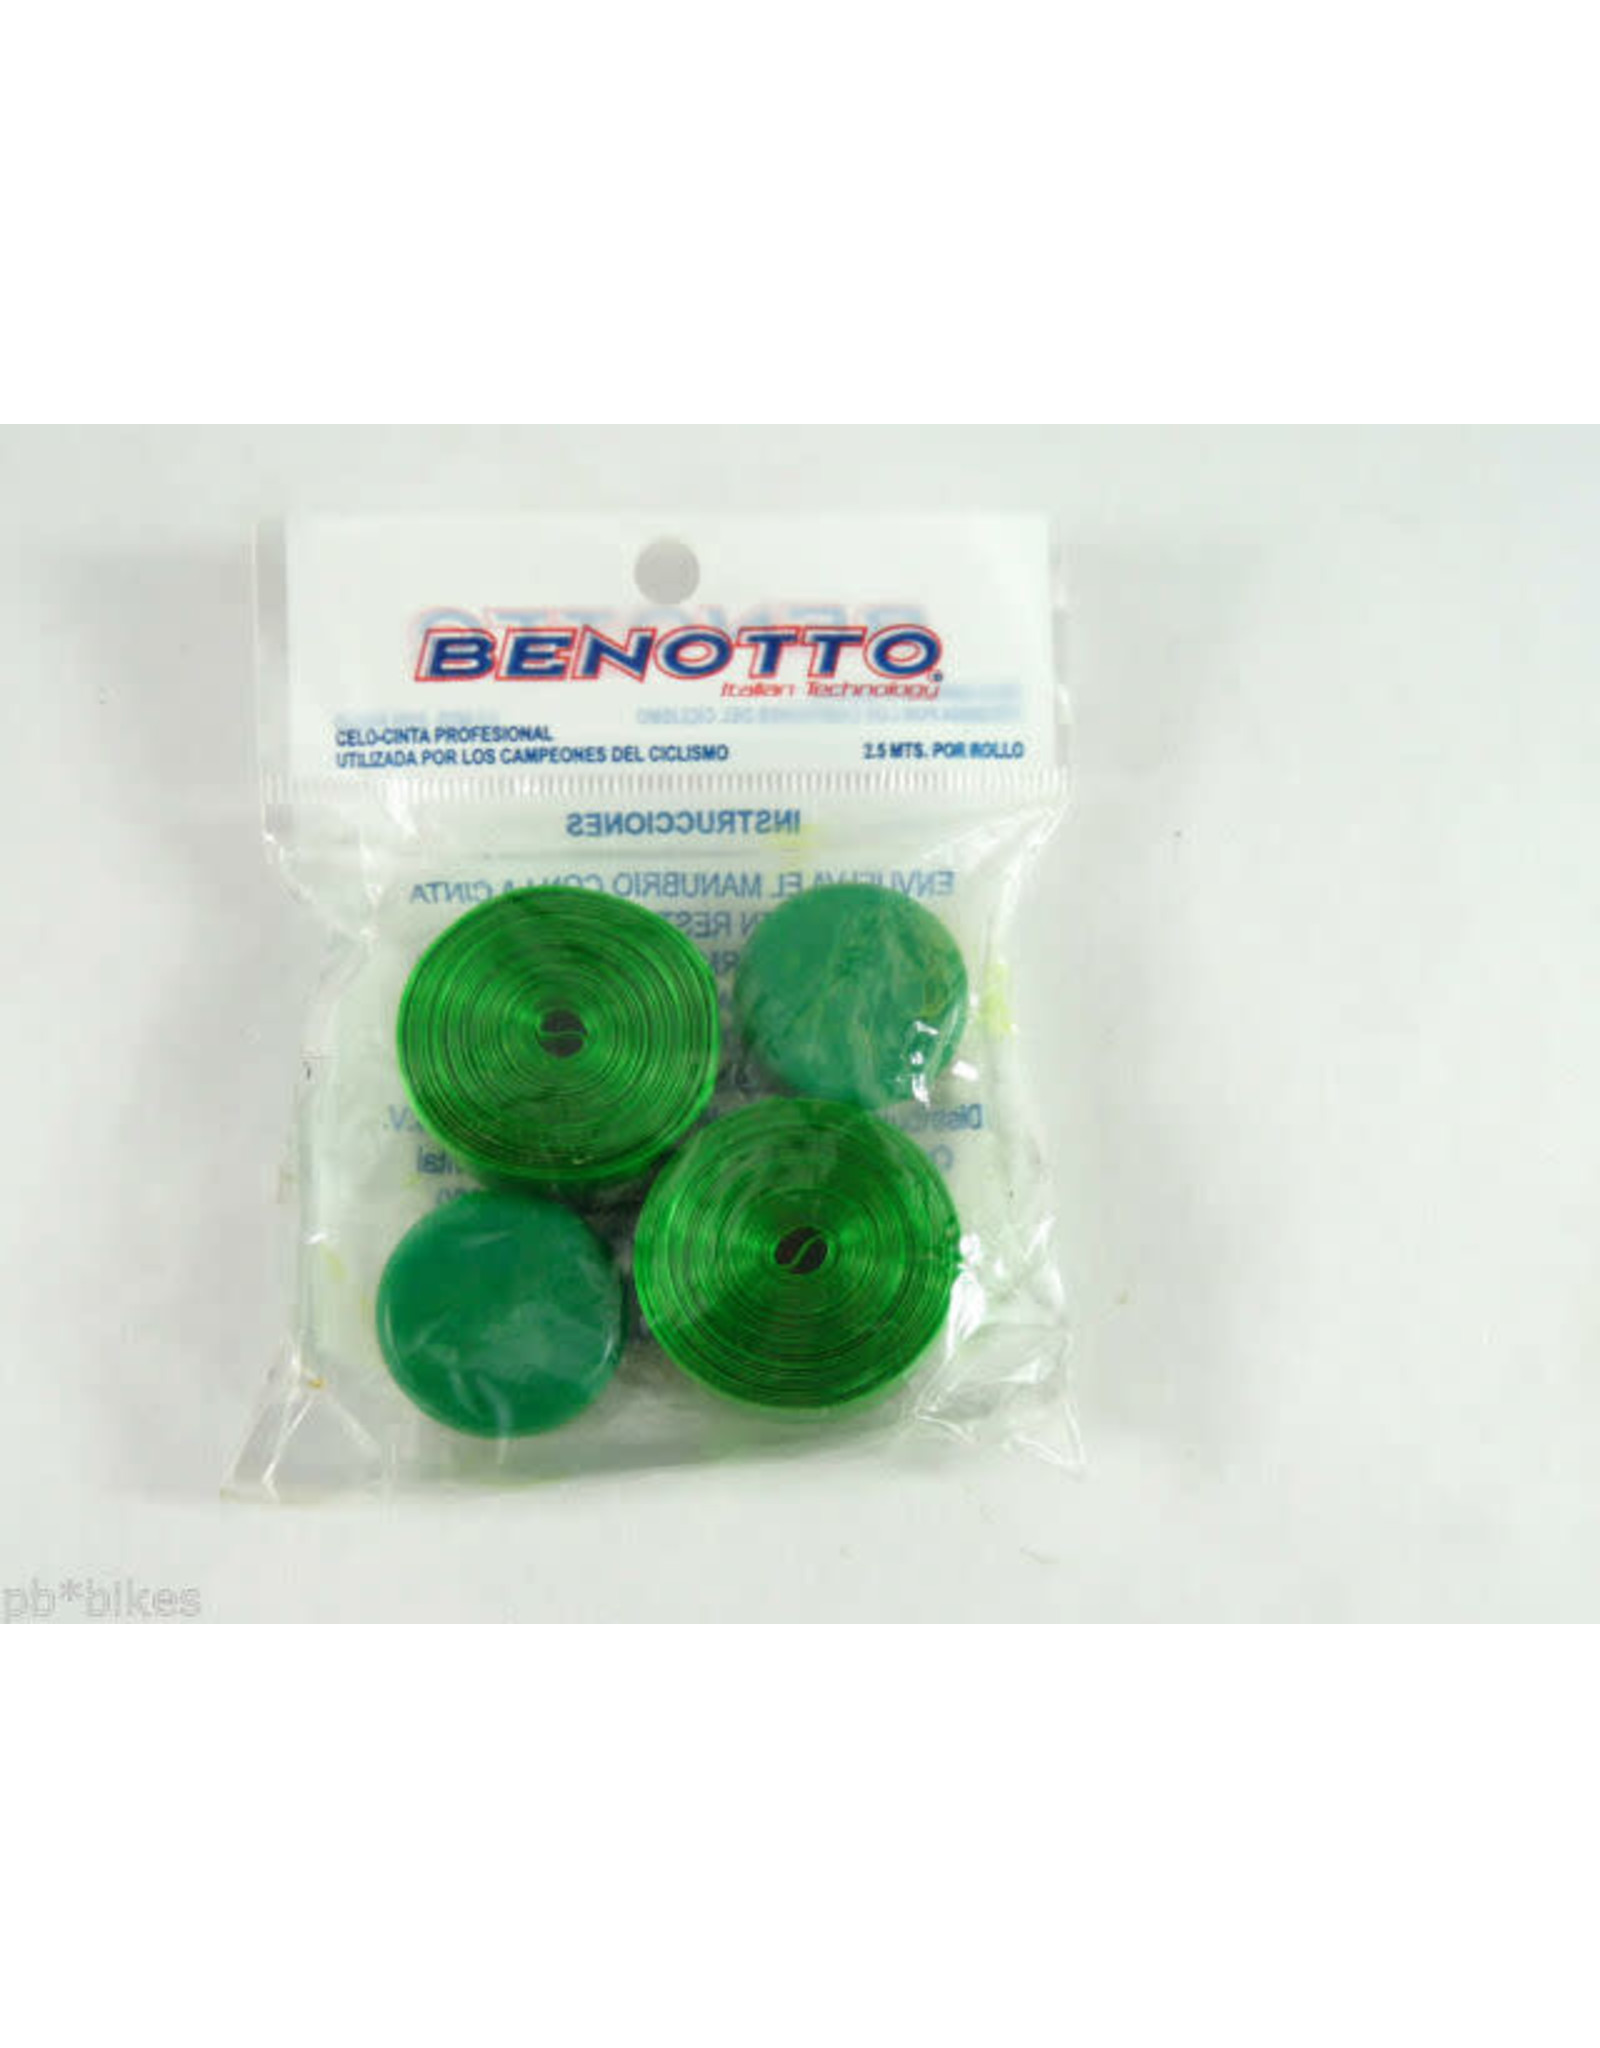 Benotto Bennoto Tape Green